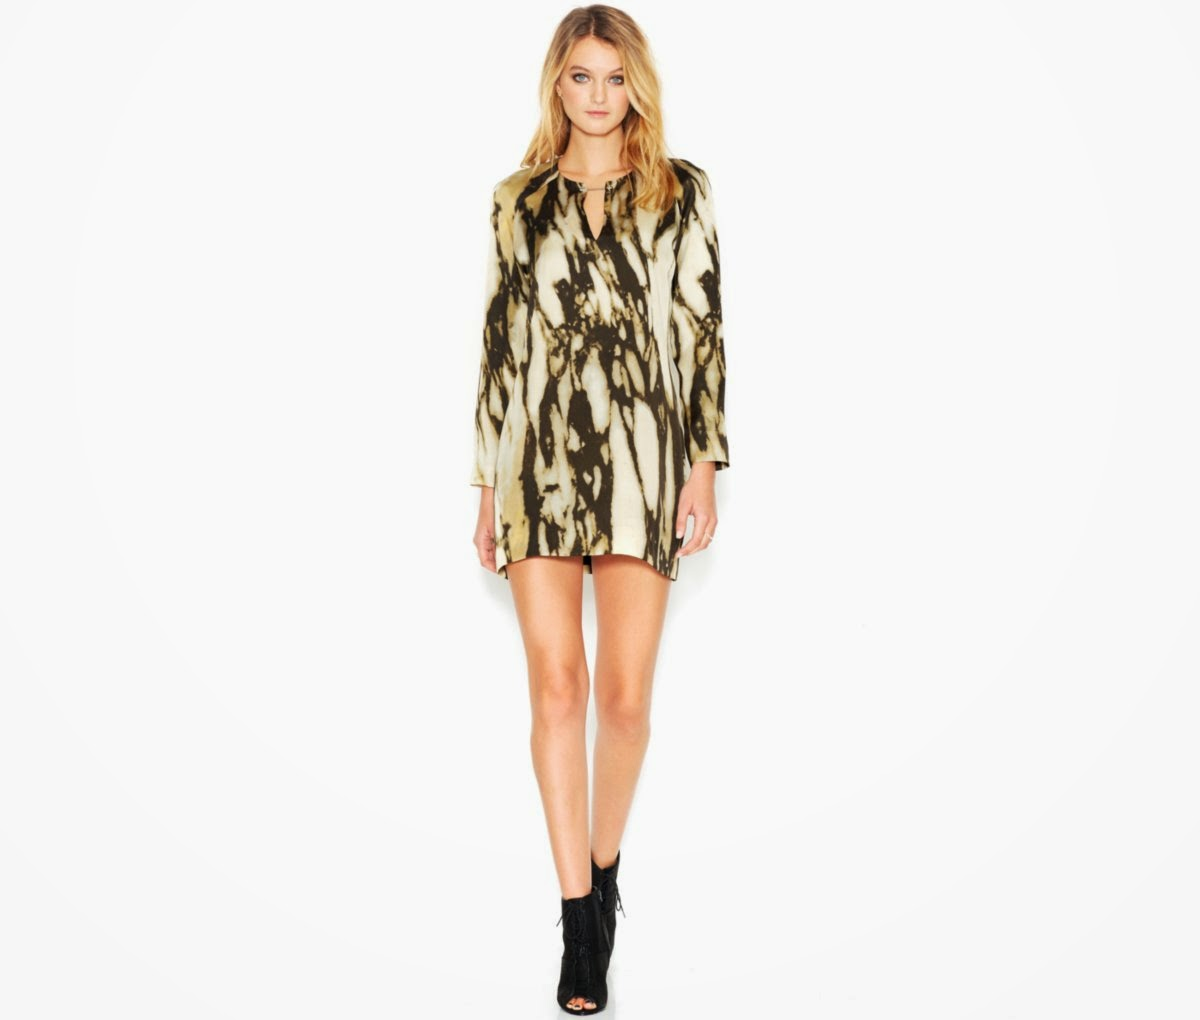 Macy's Fall Fashion-  RACHEL Rachel Roy Long-Sleeve Cutout Marble-Print Dress Fashion Rocks